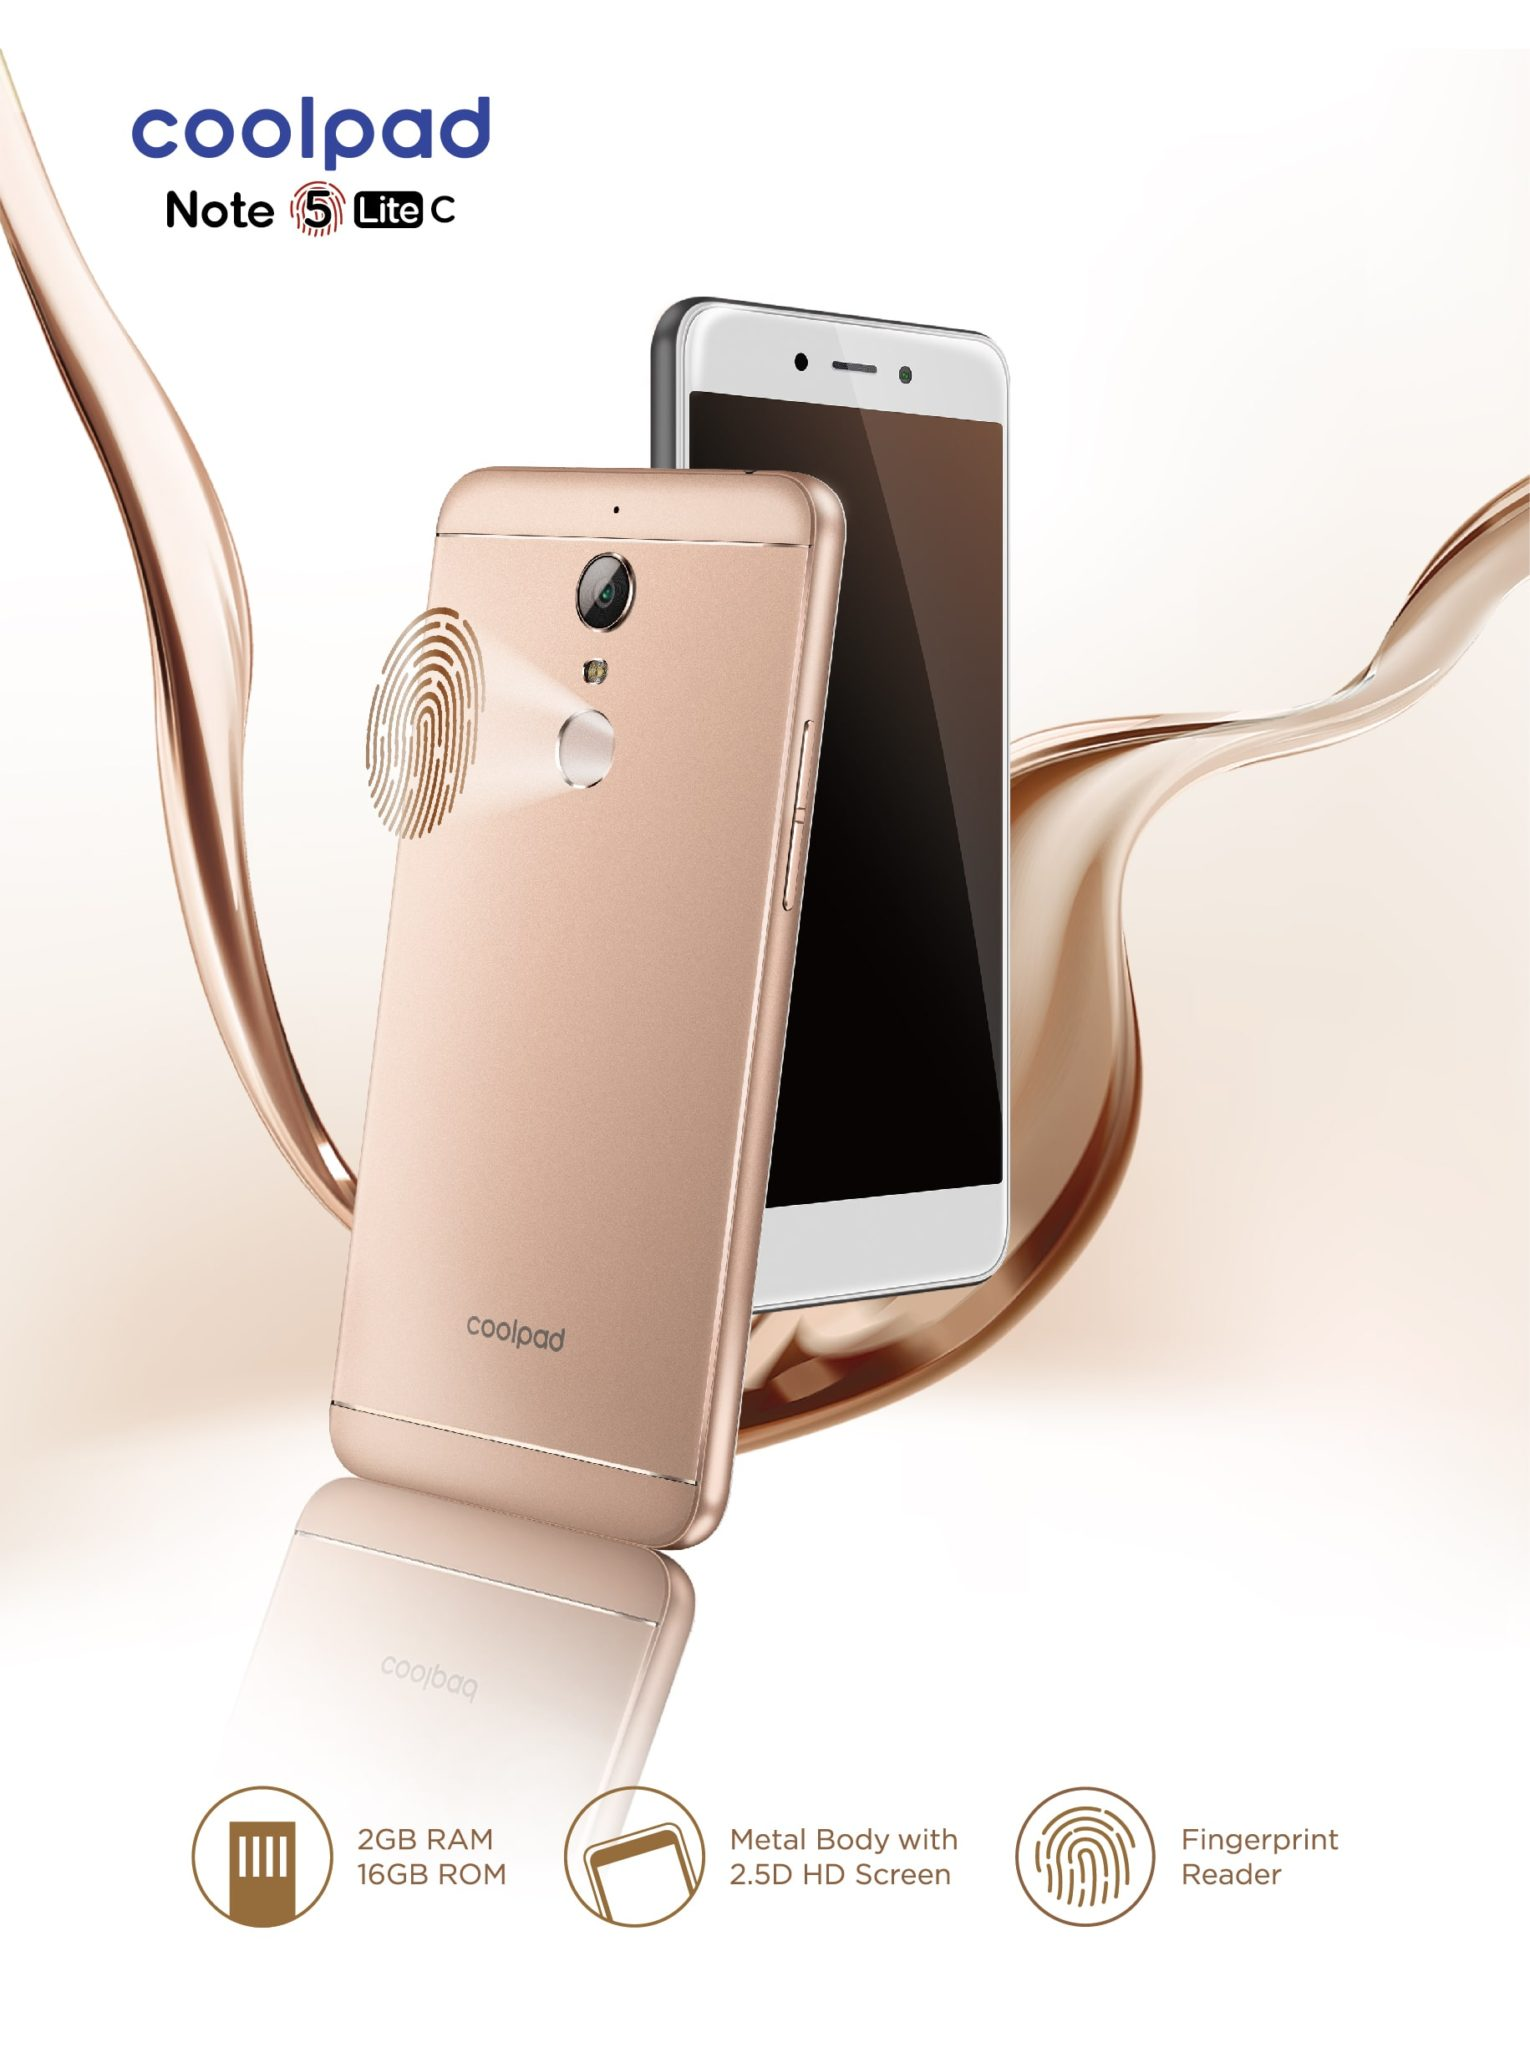 Coolpad launches Note 5 Lite C its first offline with Android 7.1 Nougat